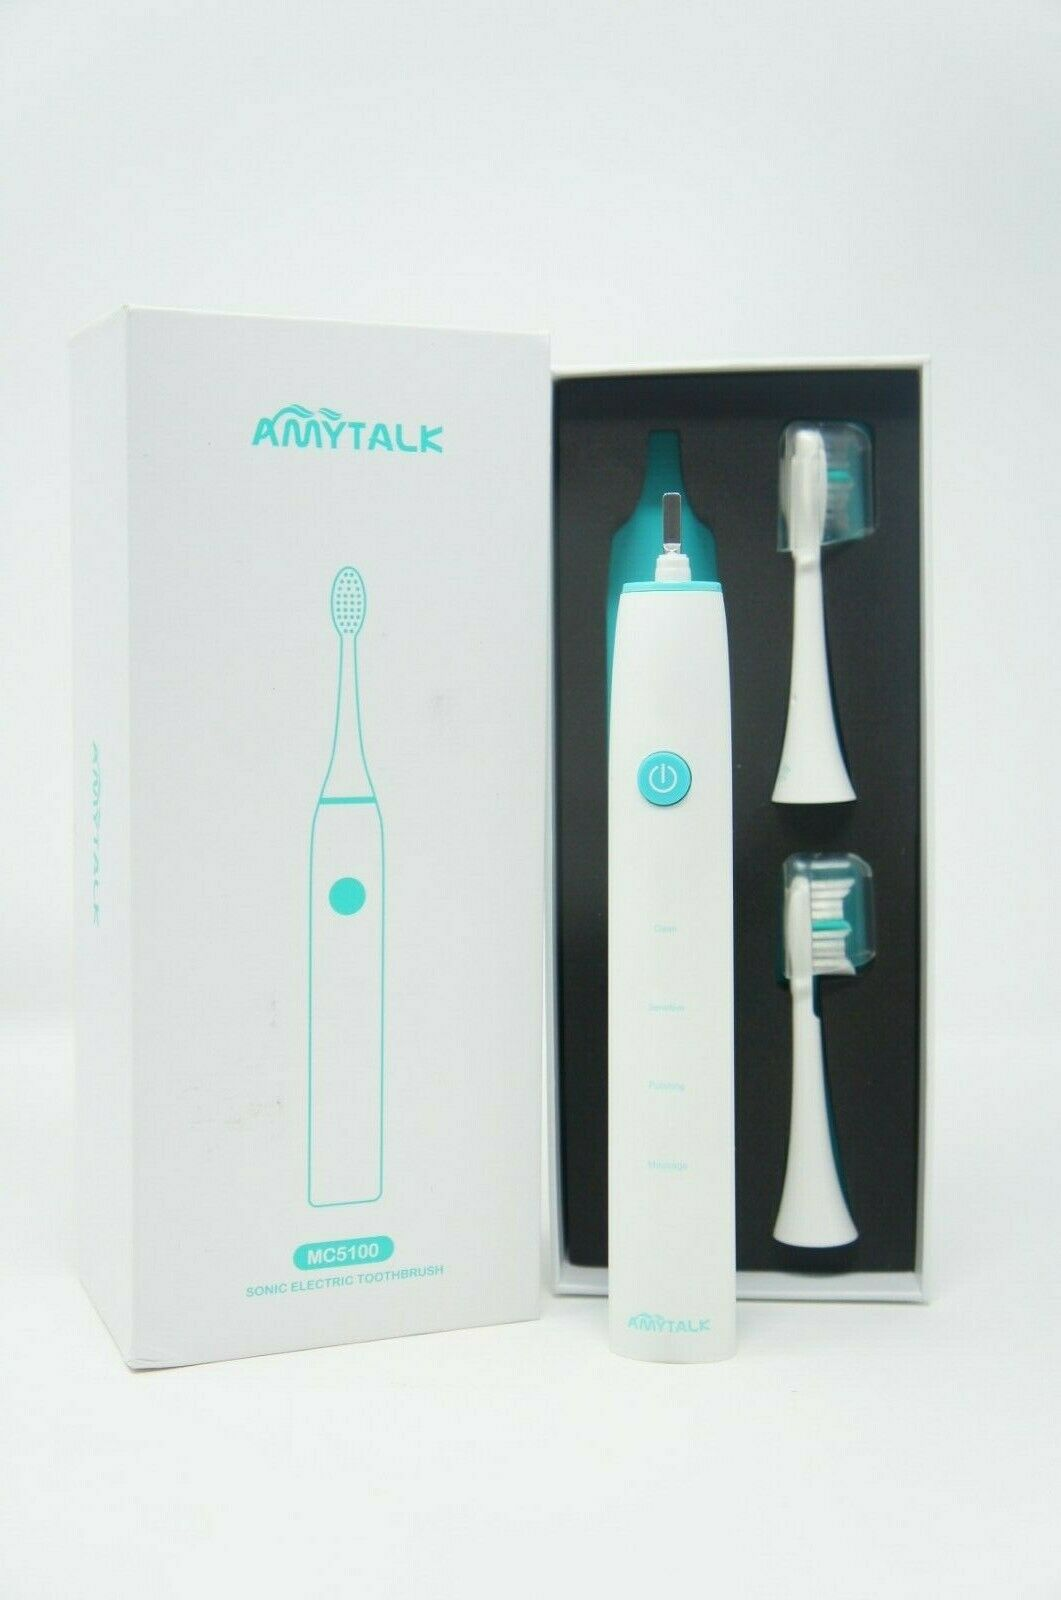 AMYTALK MC5100 Electric Toothbrush FDA registered Sonic Toothbrush